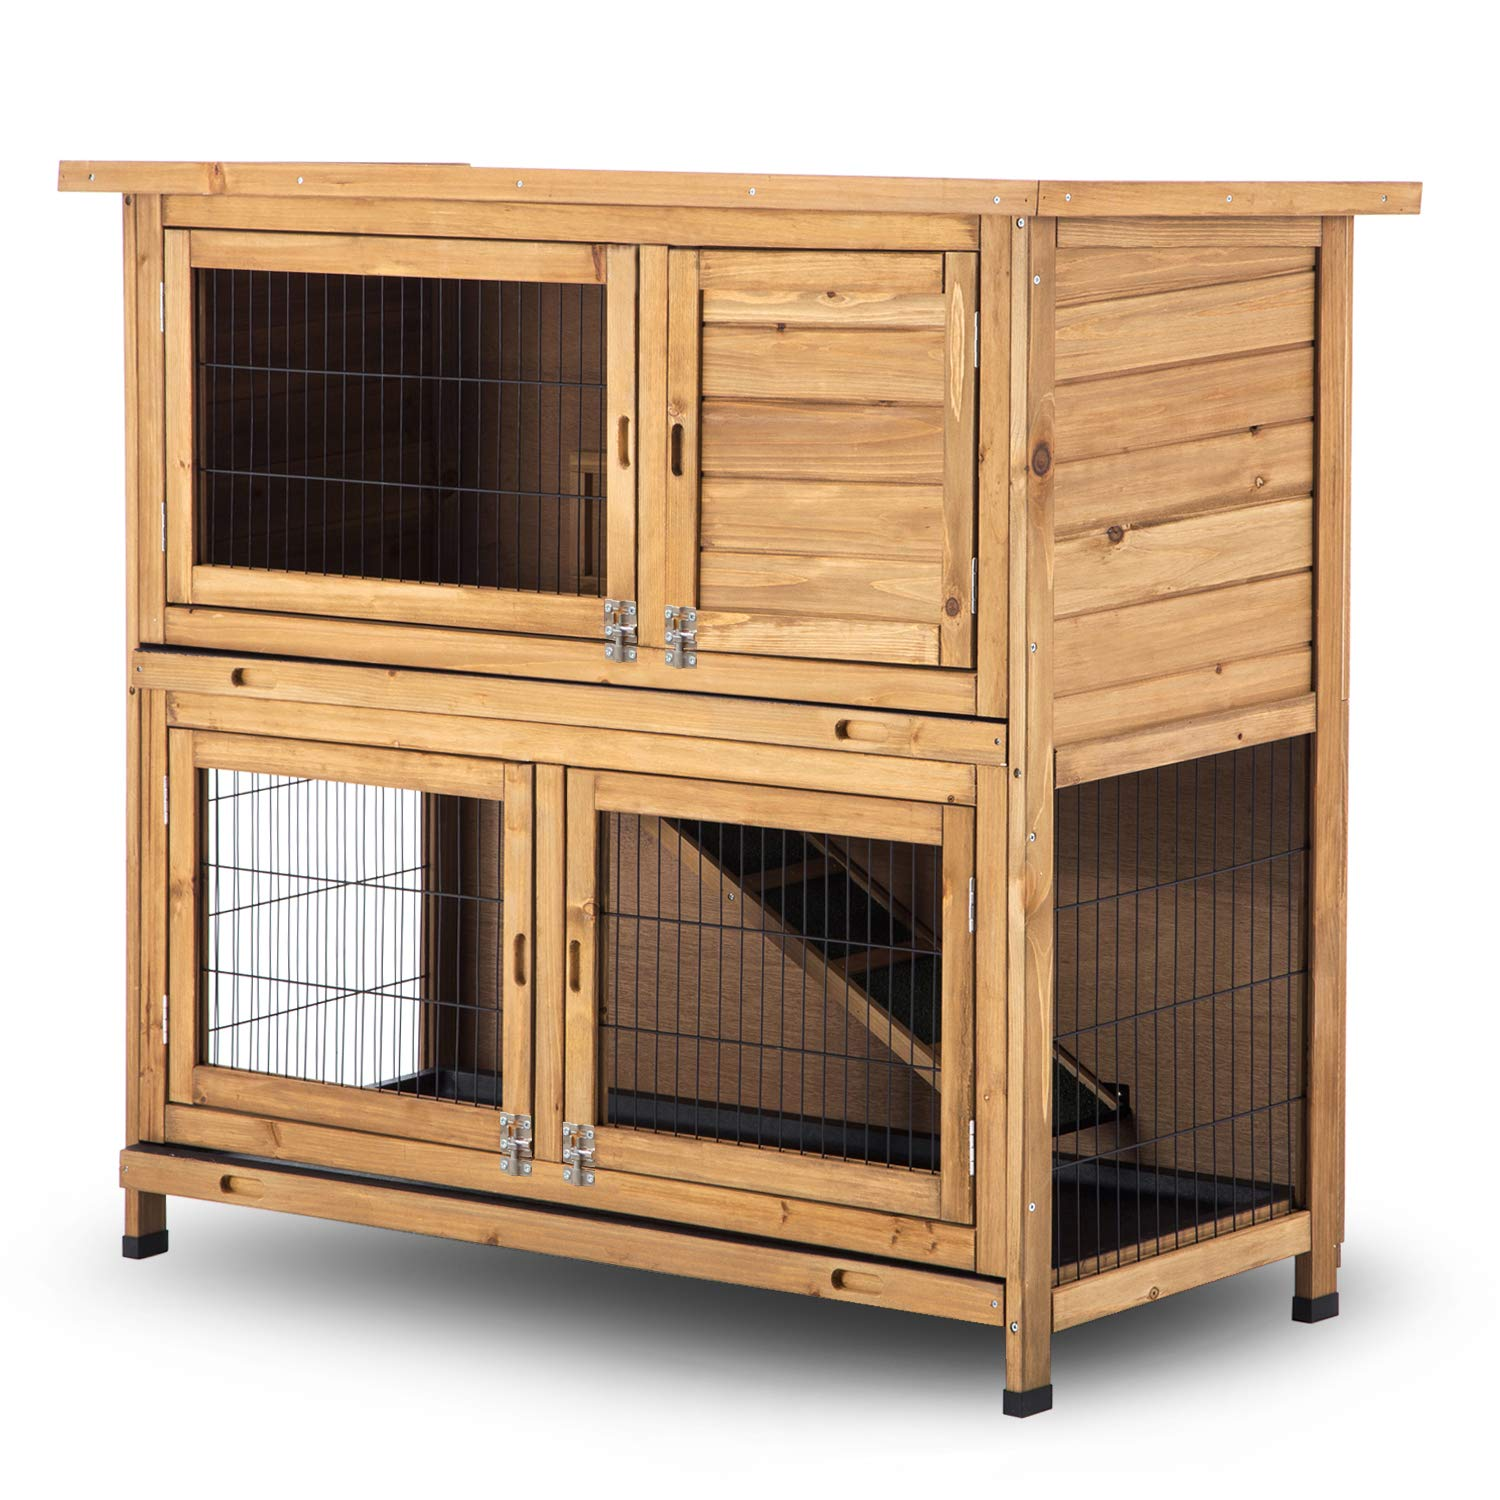 Lovupet 2 Story Outdoor Wooden Rabbit Hutch Chicken Coop Bunny Cage Guinea Pig House with Ladder for Small Animals (Natural) by Lovupet